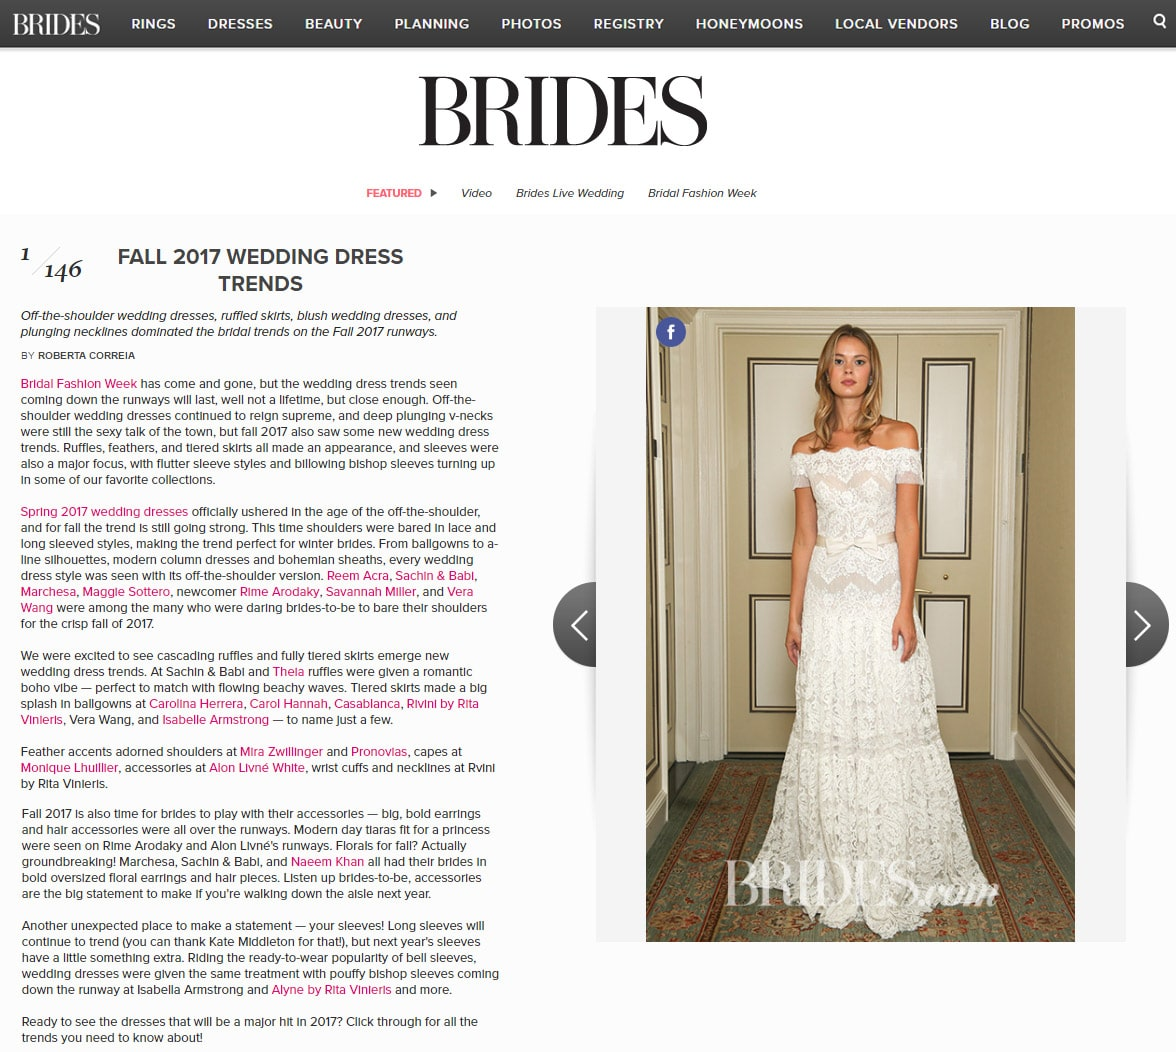 Brides.com: FALL 2017 WEDDING DRESS TRENDS